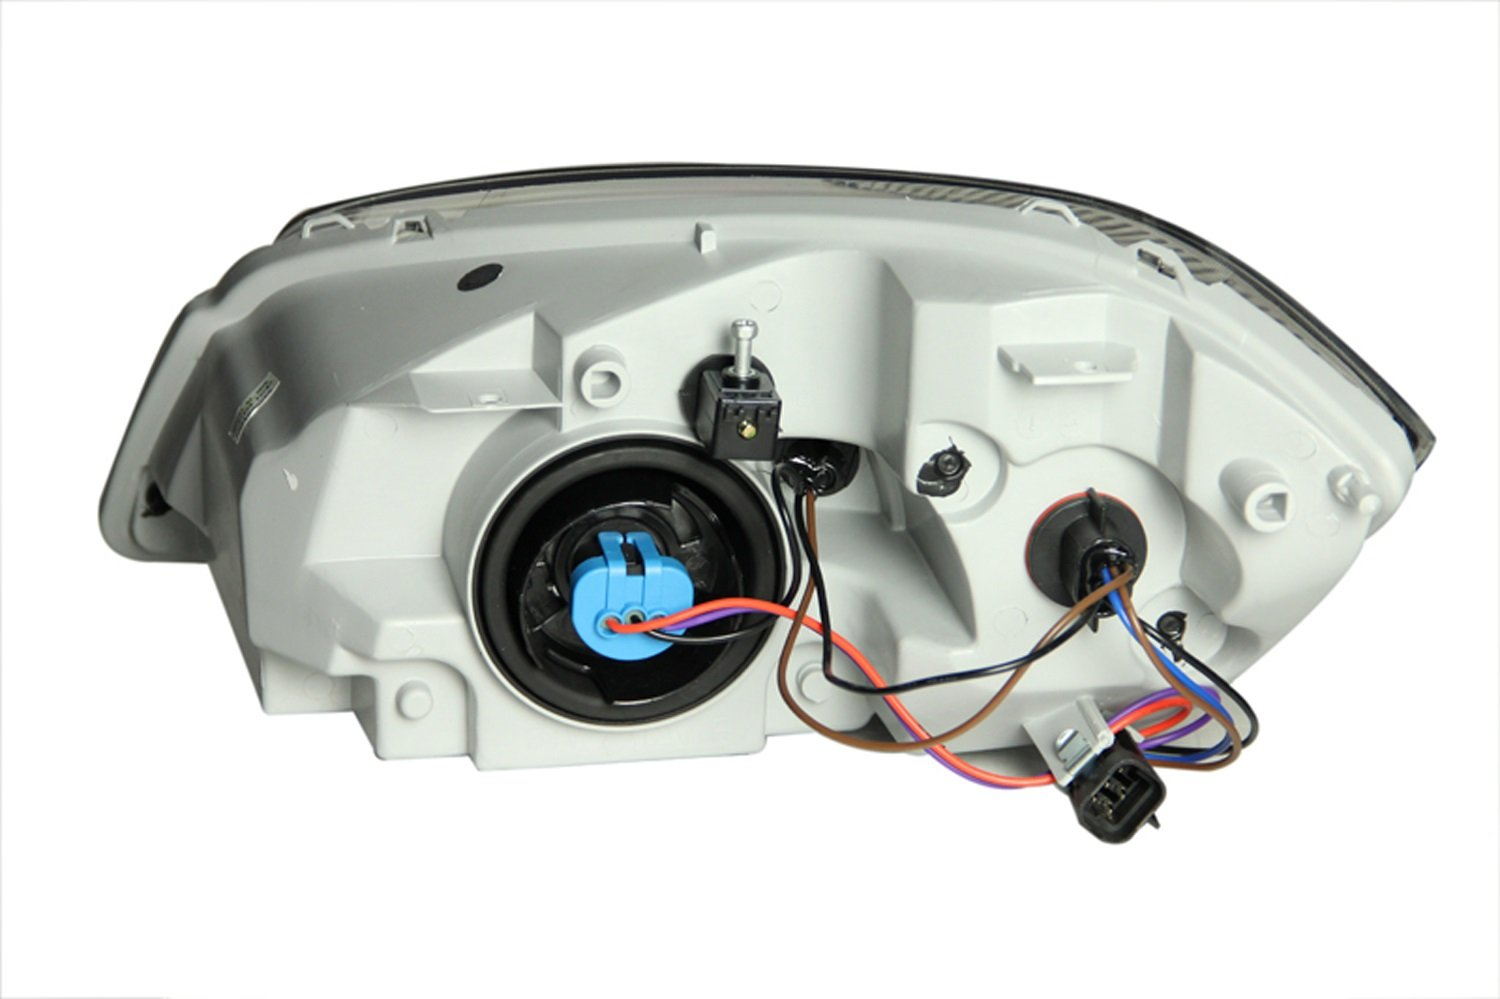 61GSljqJIyL._SL1500_ amazon com anzo usa 121154 chevrolet cobalt black headlight 2009 chevy cobalt headlight wiring harness at n-0.co